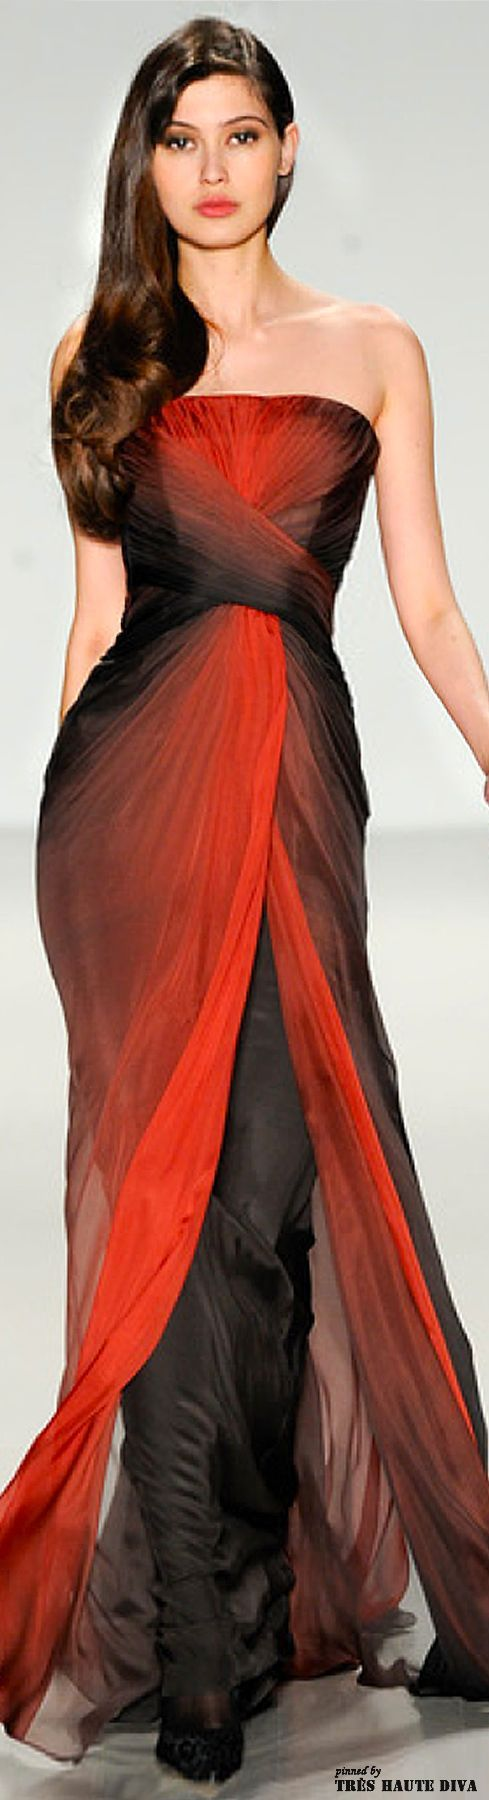 Blatantly Attention Grabbing Black And Red Dresses | Ball gowns ...